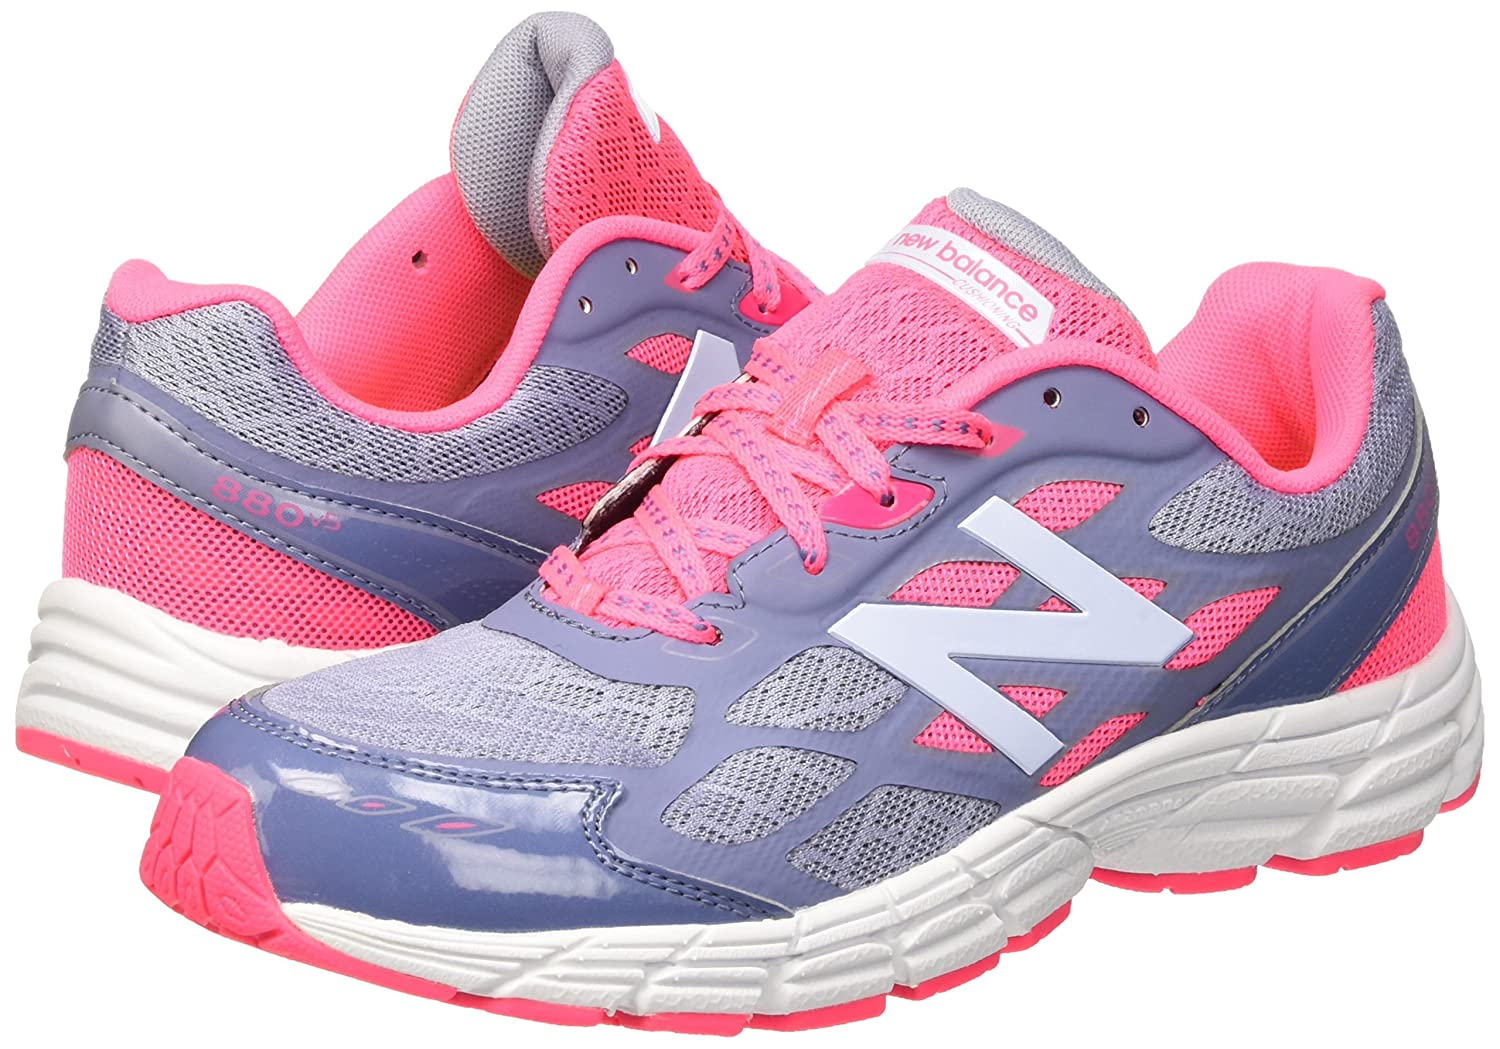 chaussures de séparation 04241 826a7 New Balance Girl's KJ880v5 Pink/Purple 12.5 XW: Amazon.ca ...